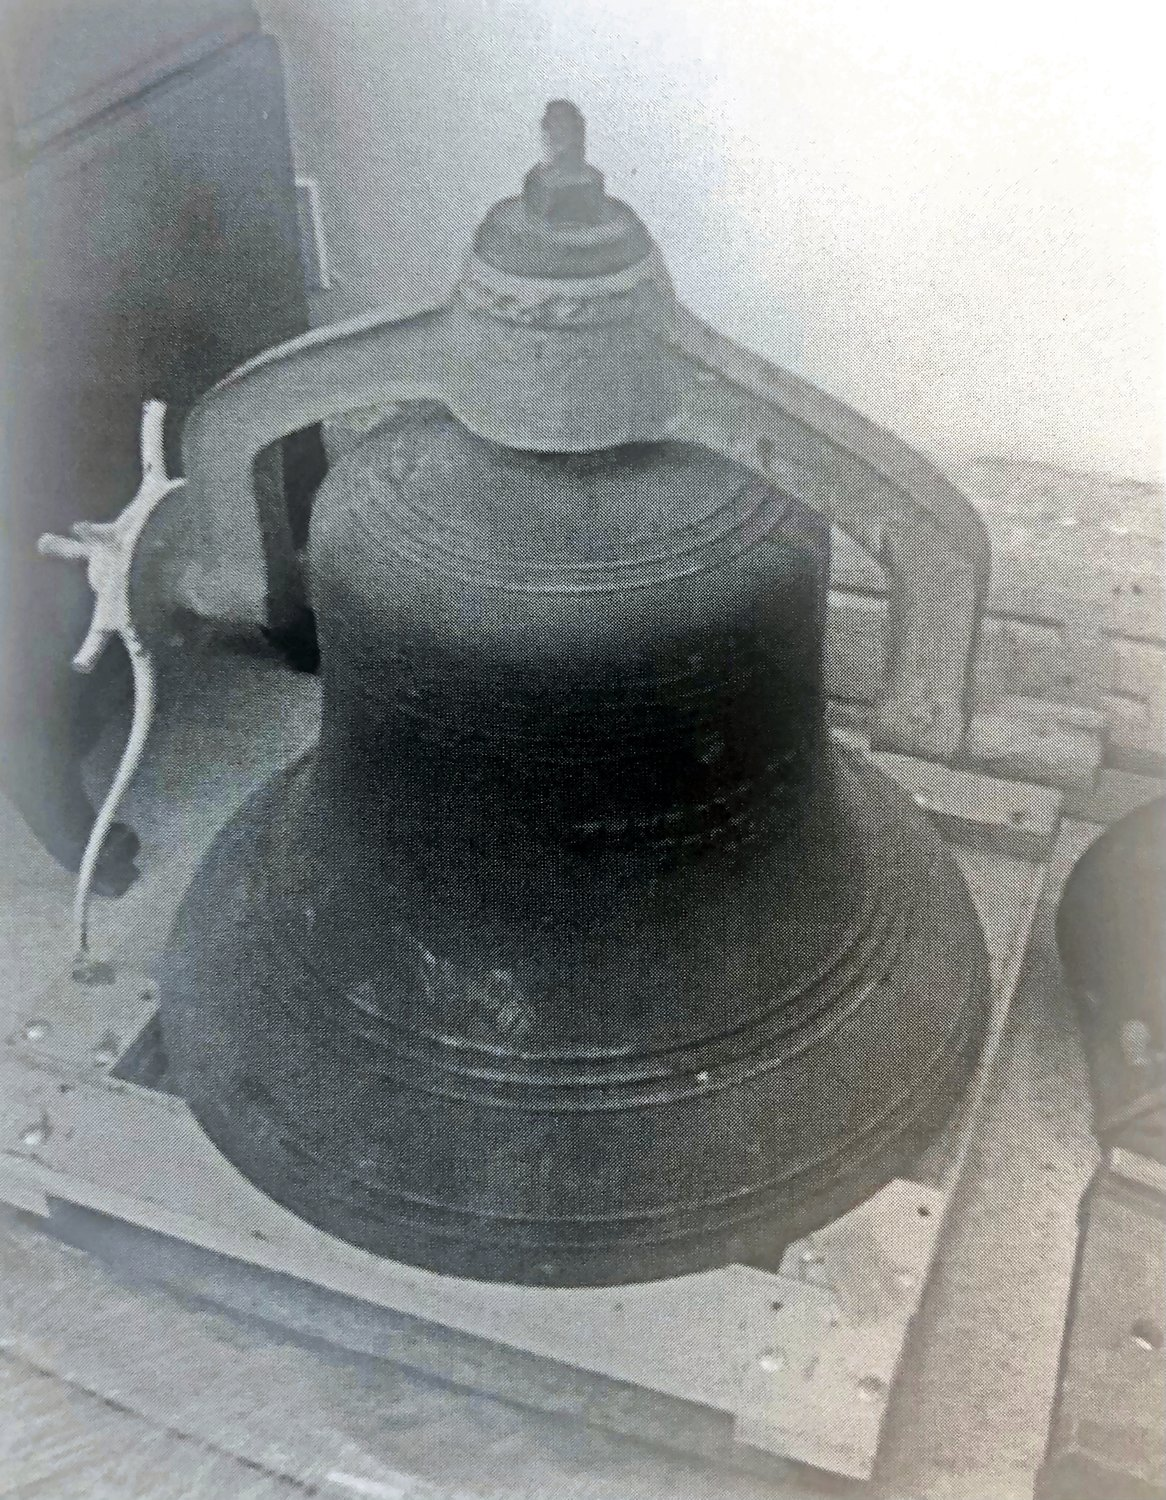 A bell was placed in the attic of the Monroe Street School when it was constructed in 1912, and would summon students to school each morning from September 1912 until the school closed in June 1975.